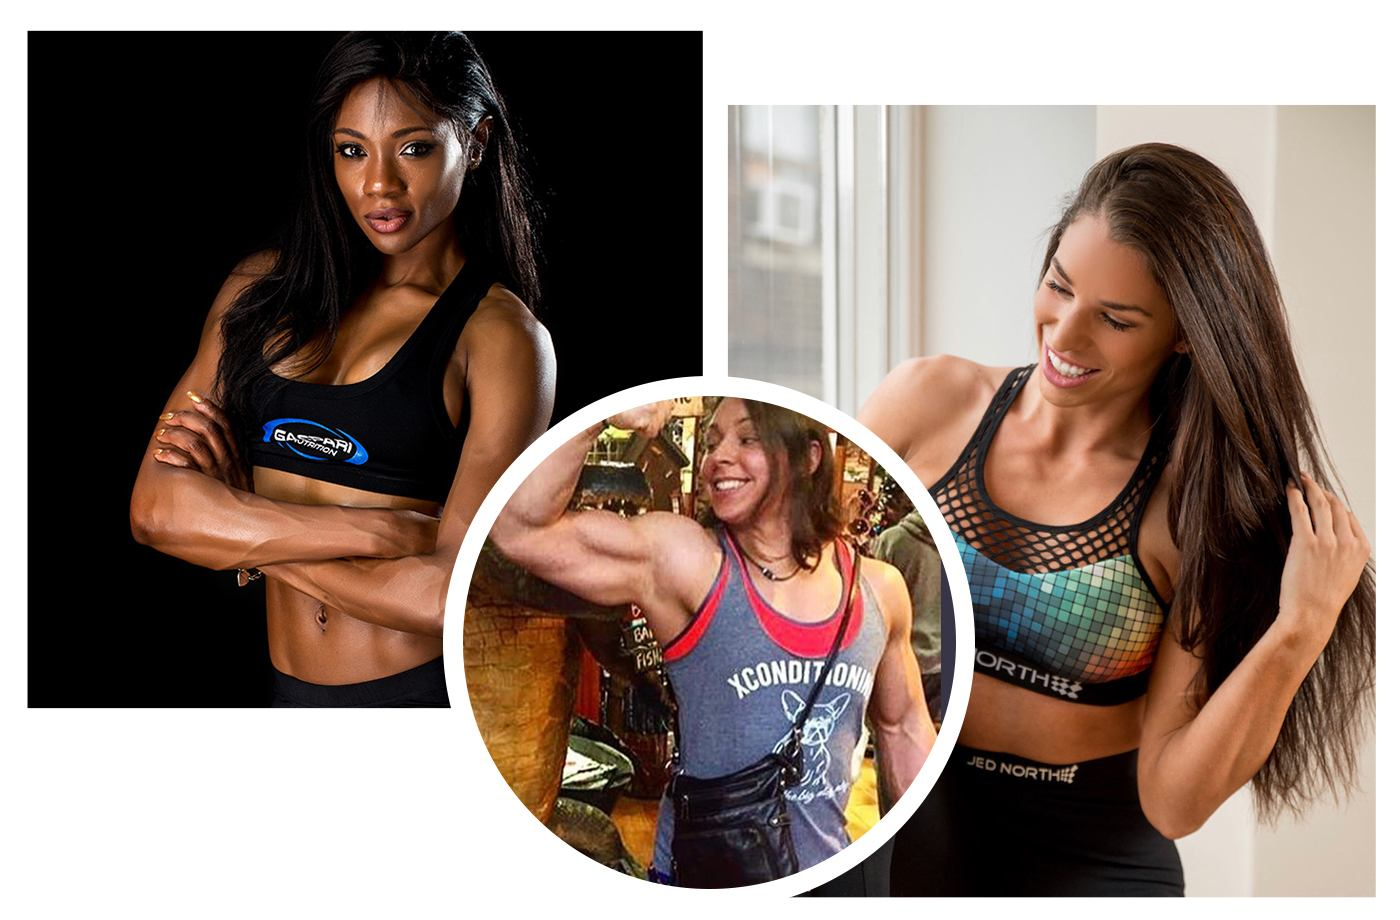 Thumbnail for Female bodybuilders share how strength makes them feel feminine